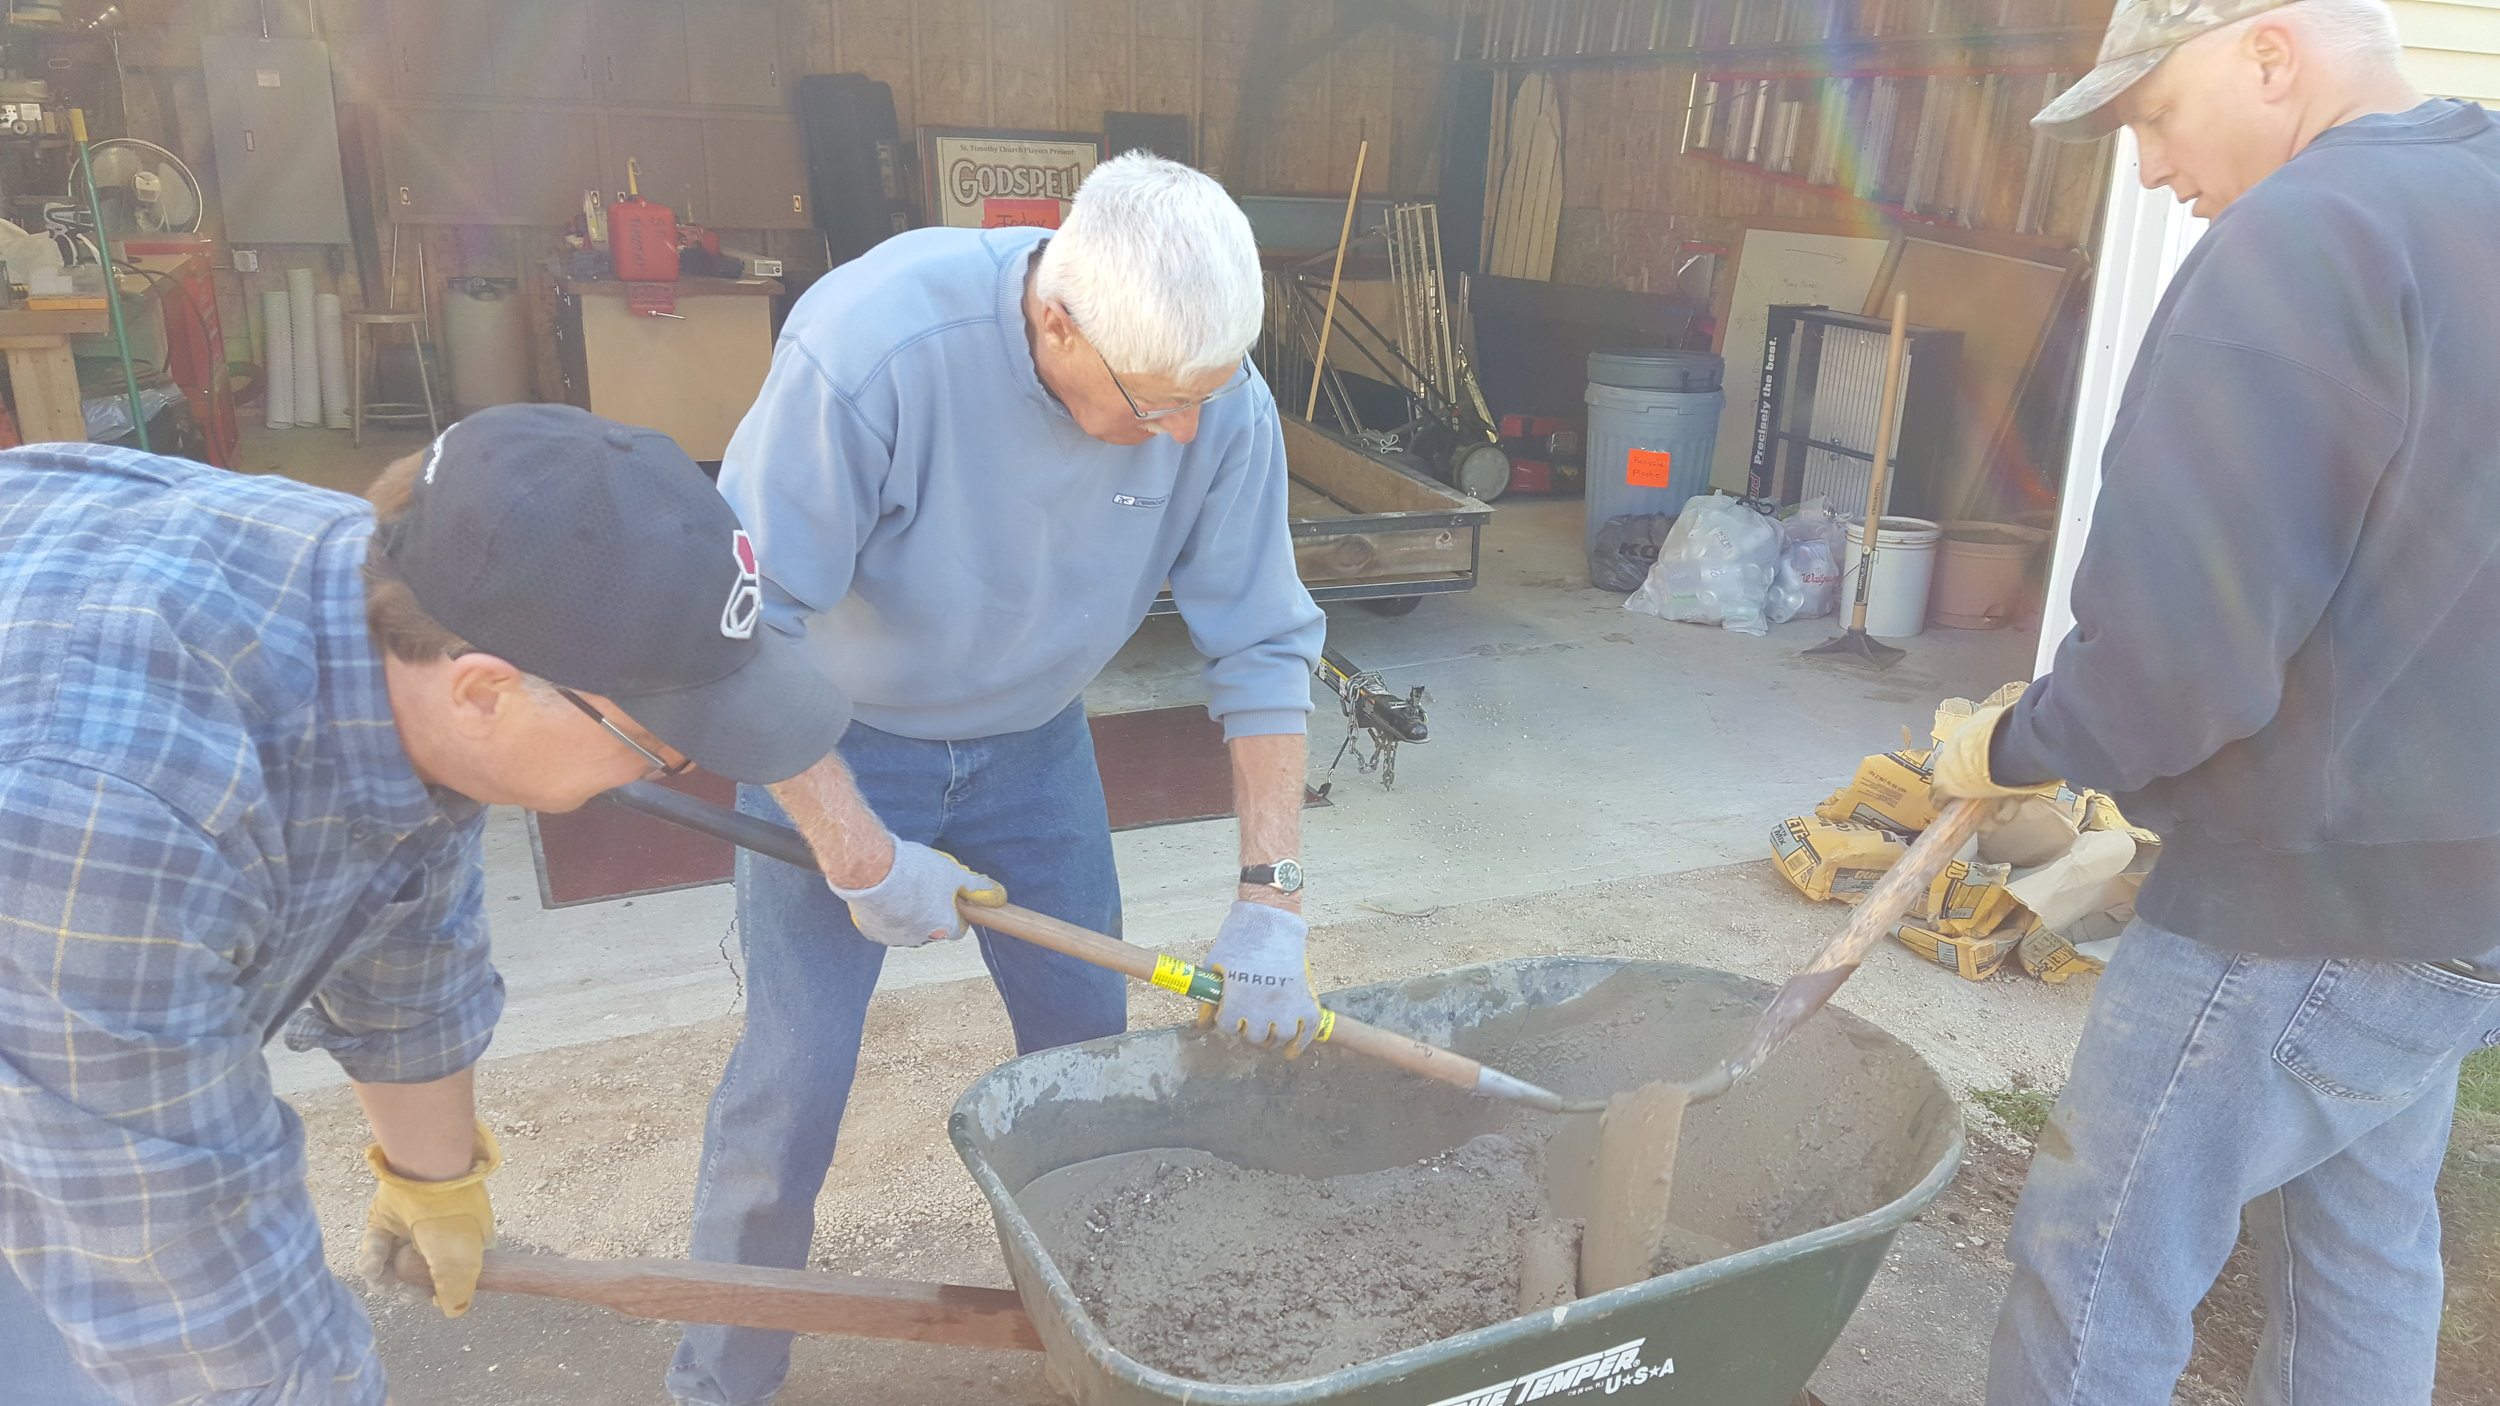 Jim Reinke Ron and Steve Schlze mixing concrete May 6 2017.jpg